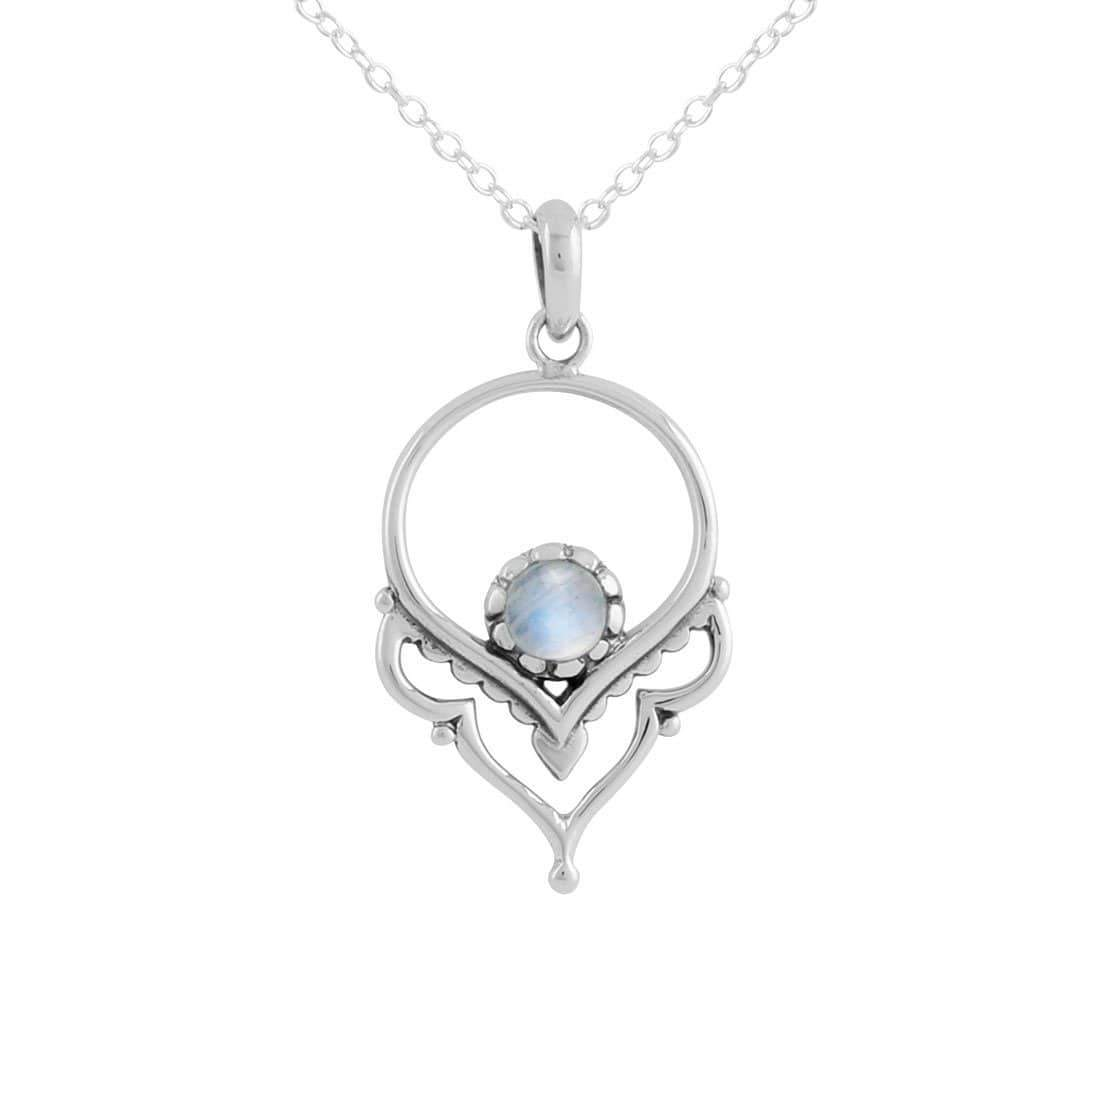 Midsummer Star Necklaces Dainty Affirmation Moonstone Necklace